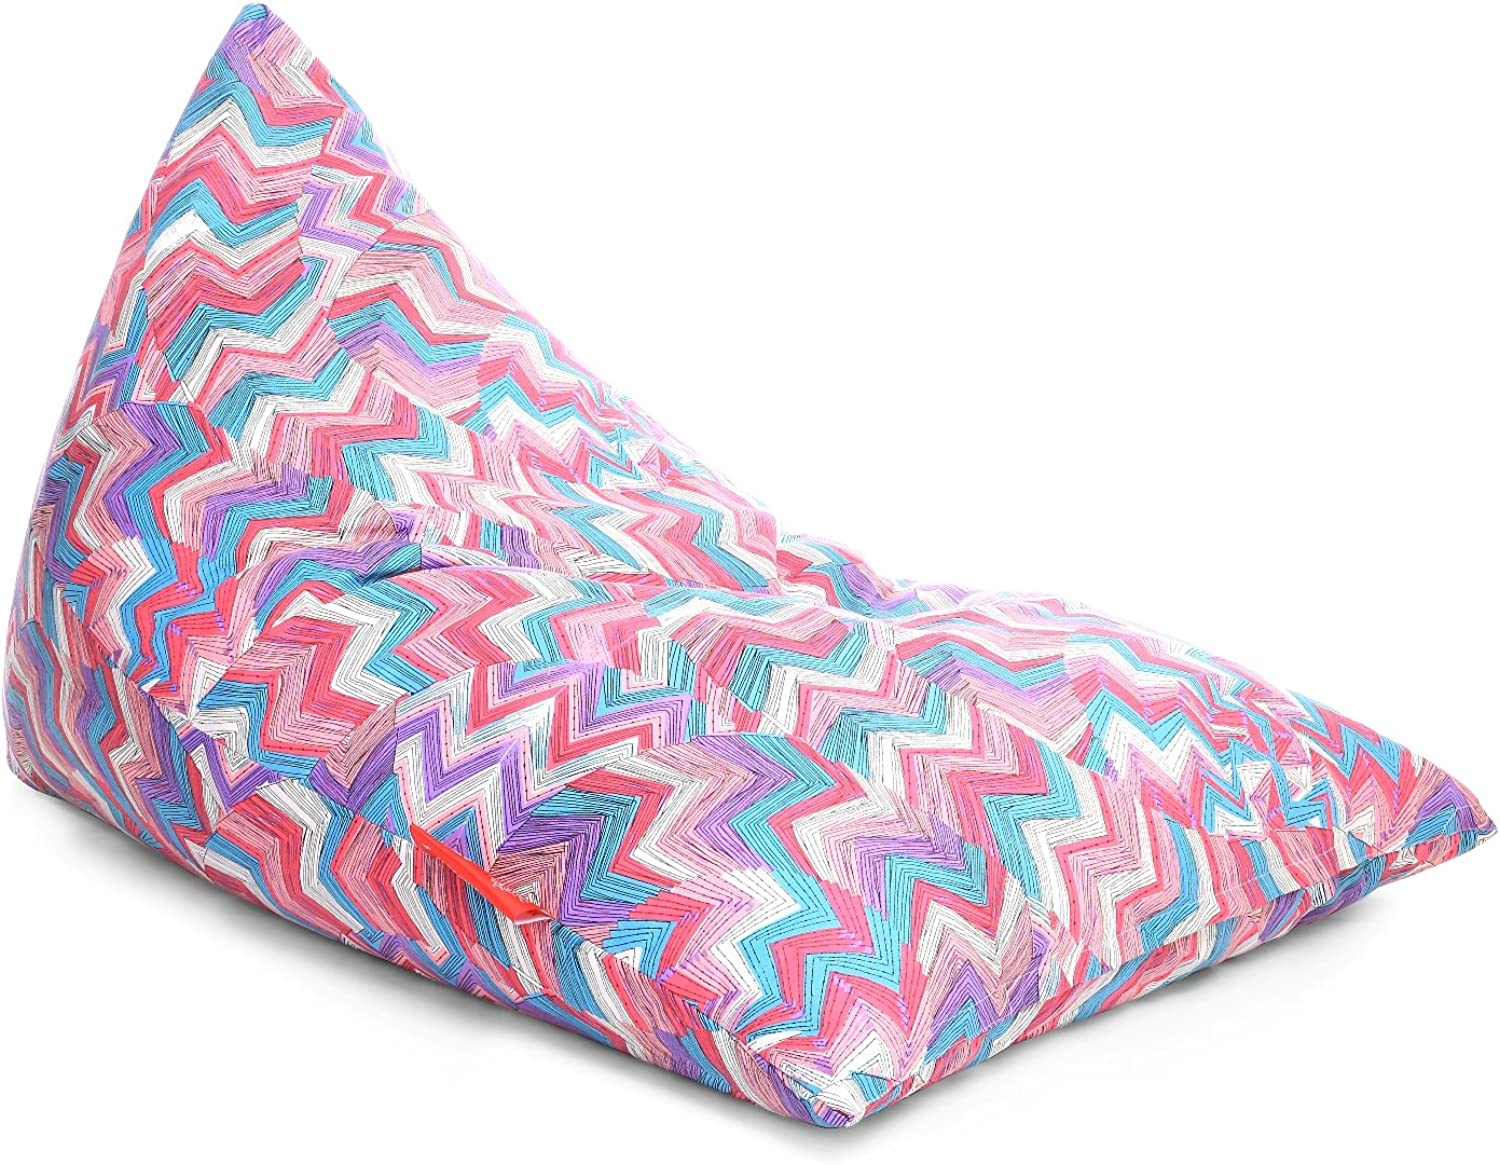 Style Homez Lounge Pyramid Cotton Canvas Geometric Printed Bean Bag XXL Size Cover Only